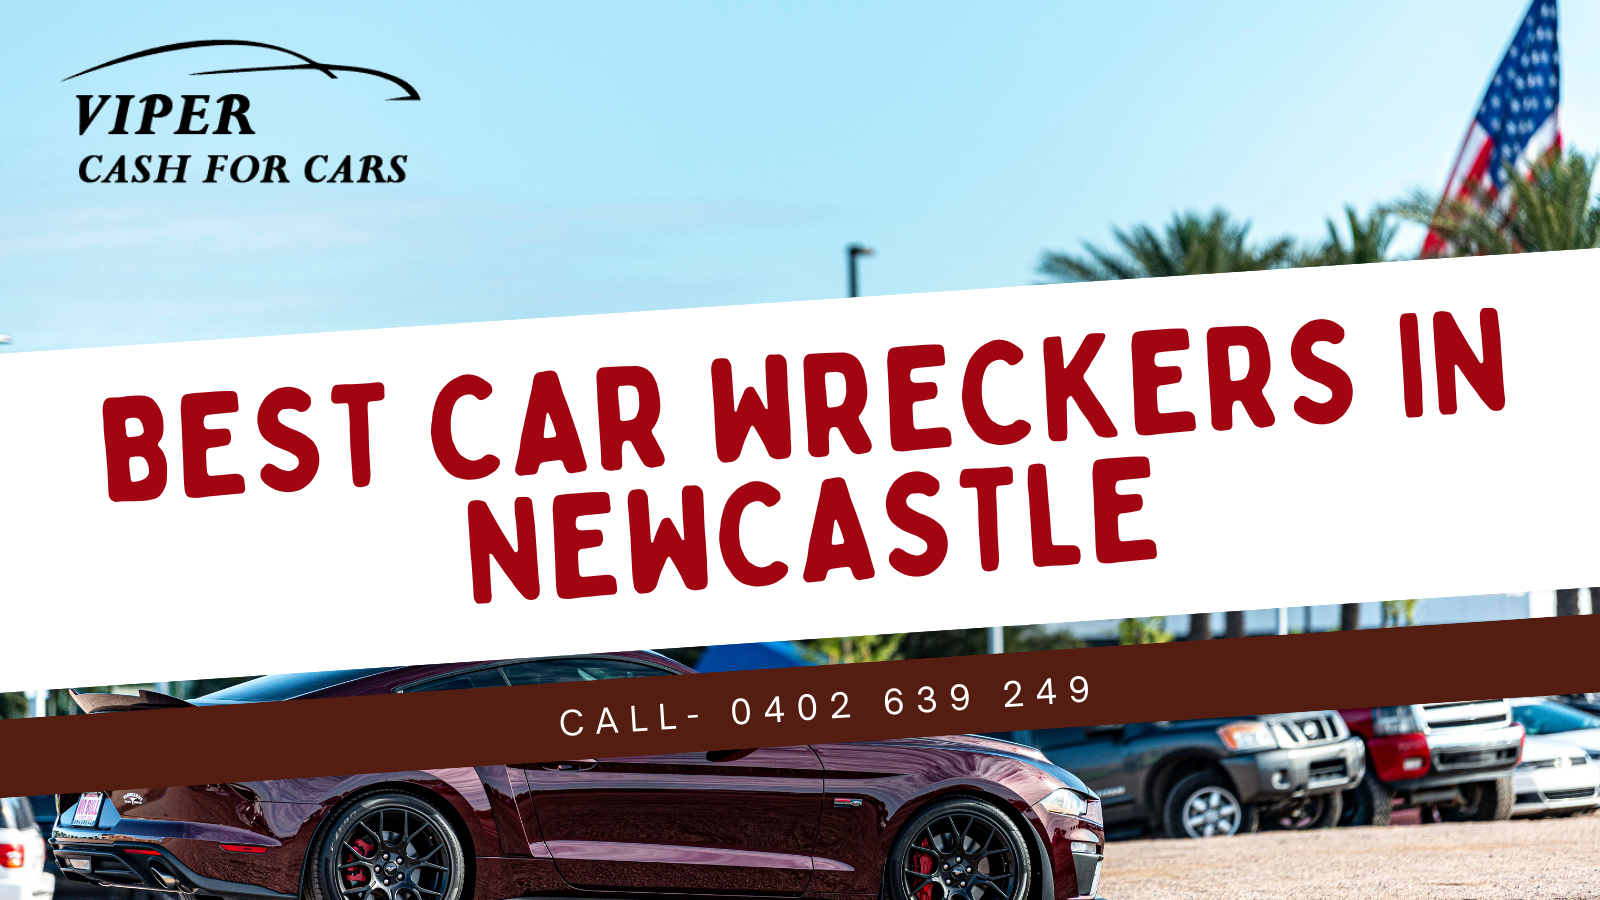 Look how viper cash for cars is the best car wreckers in Newcastle